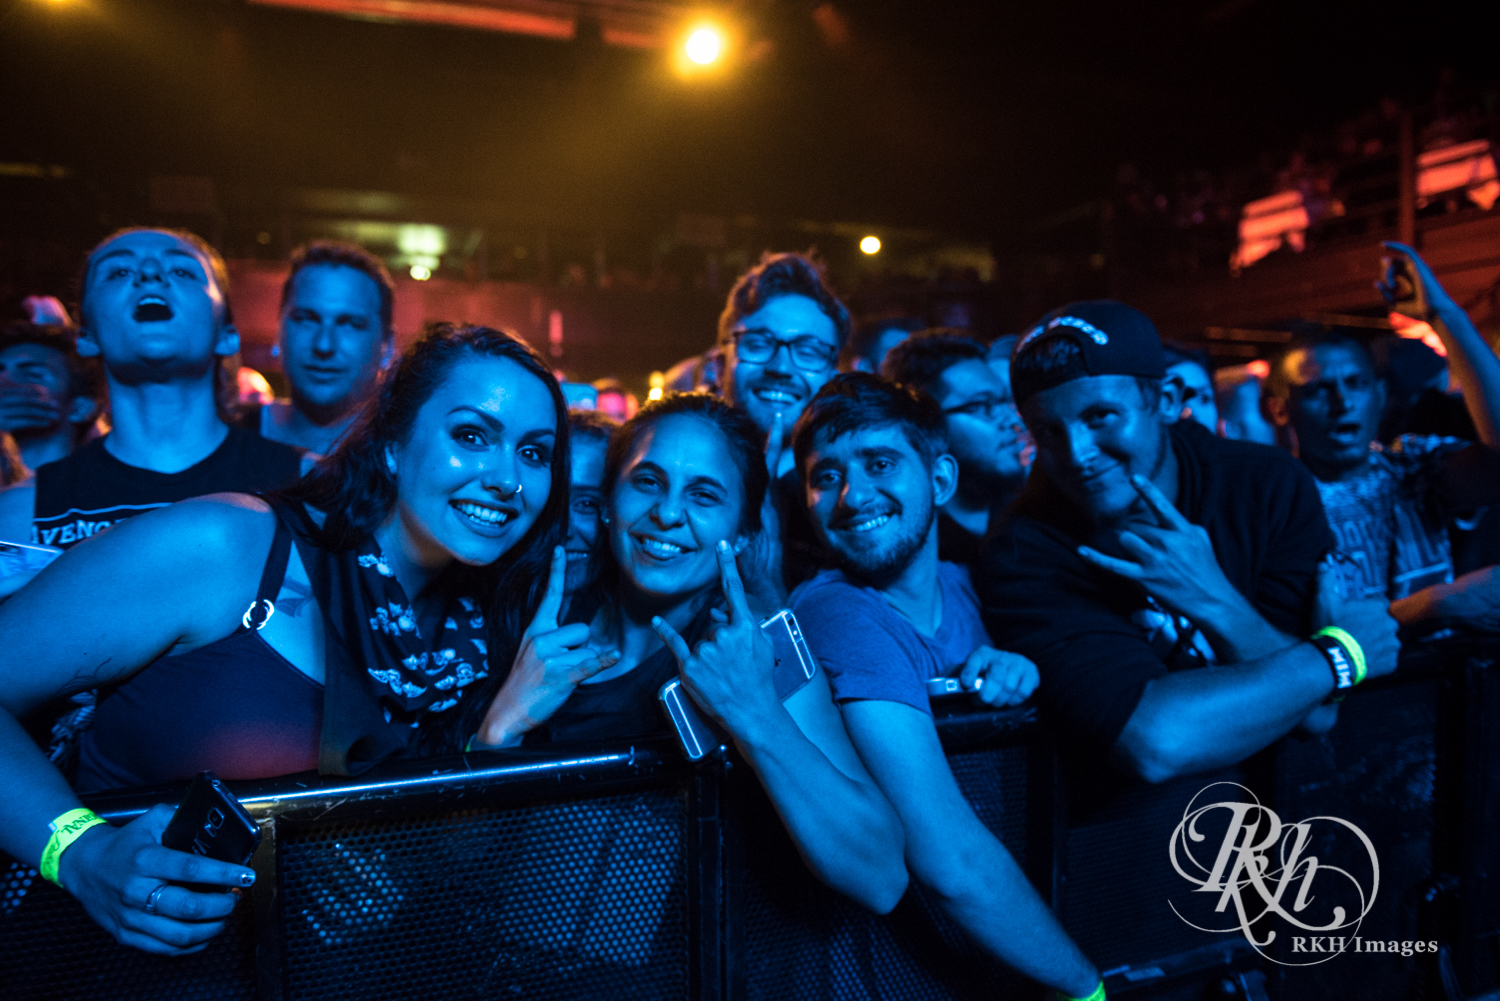 a7x rkh images (16 of 52).jpg